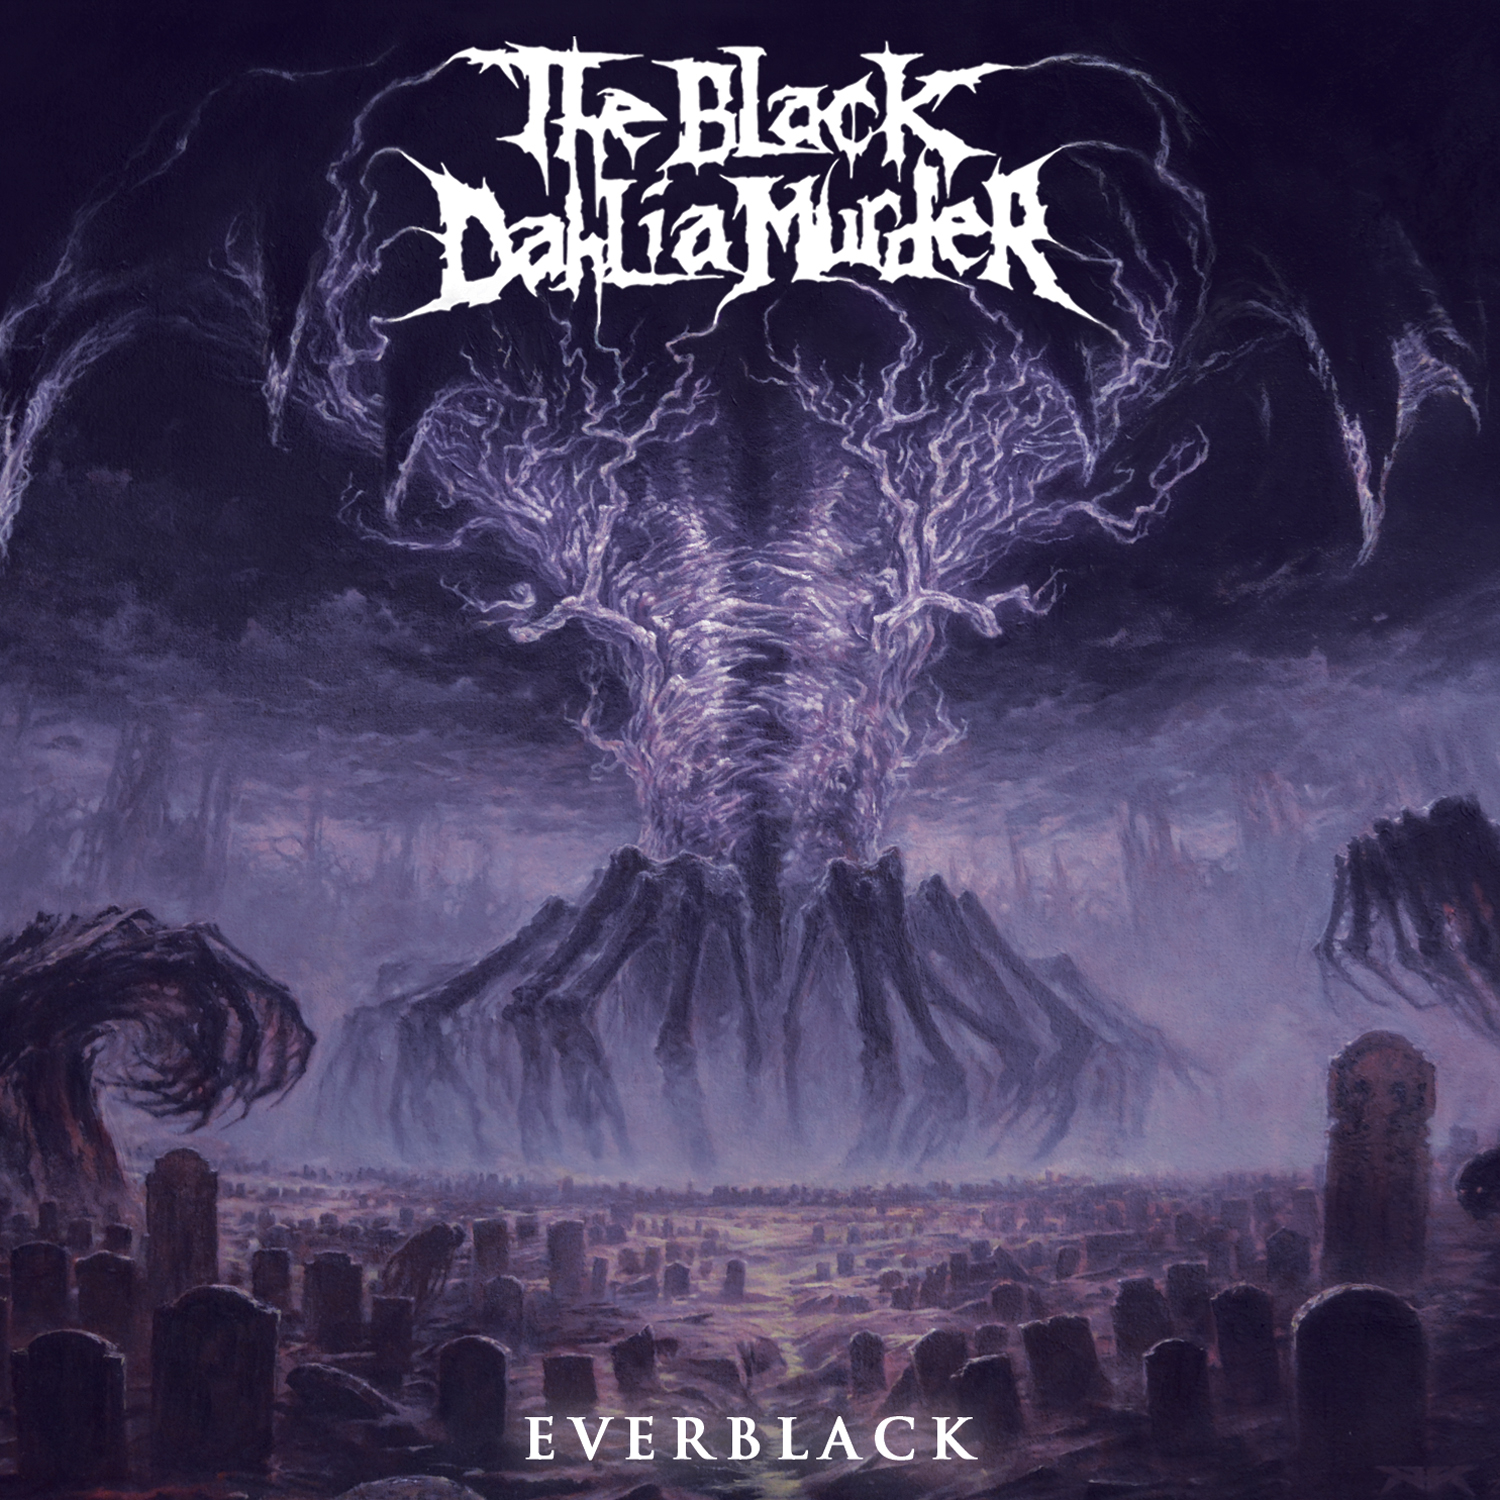 The Black Dahlia Murder – Everblack Review